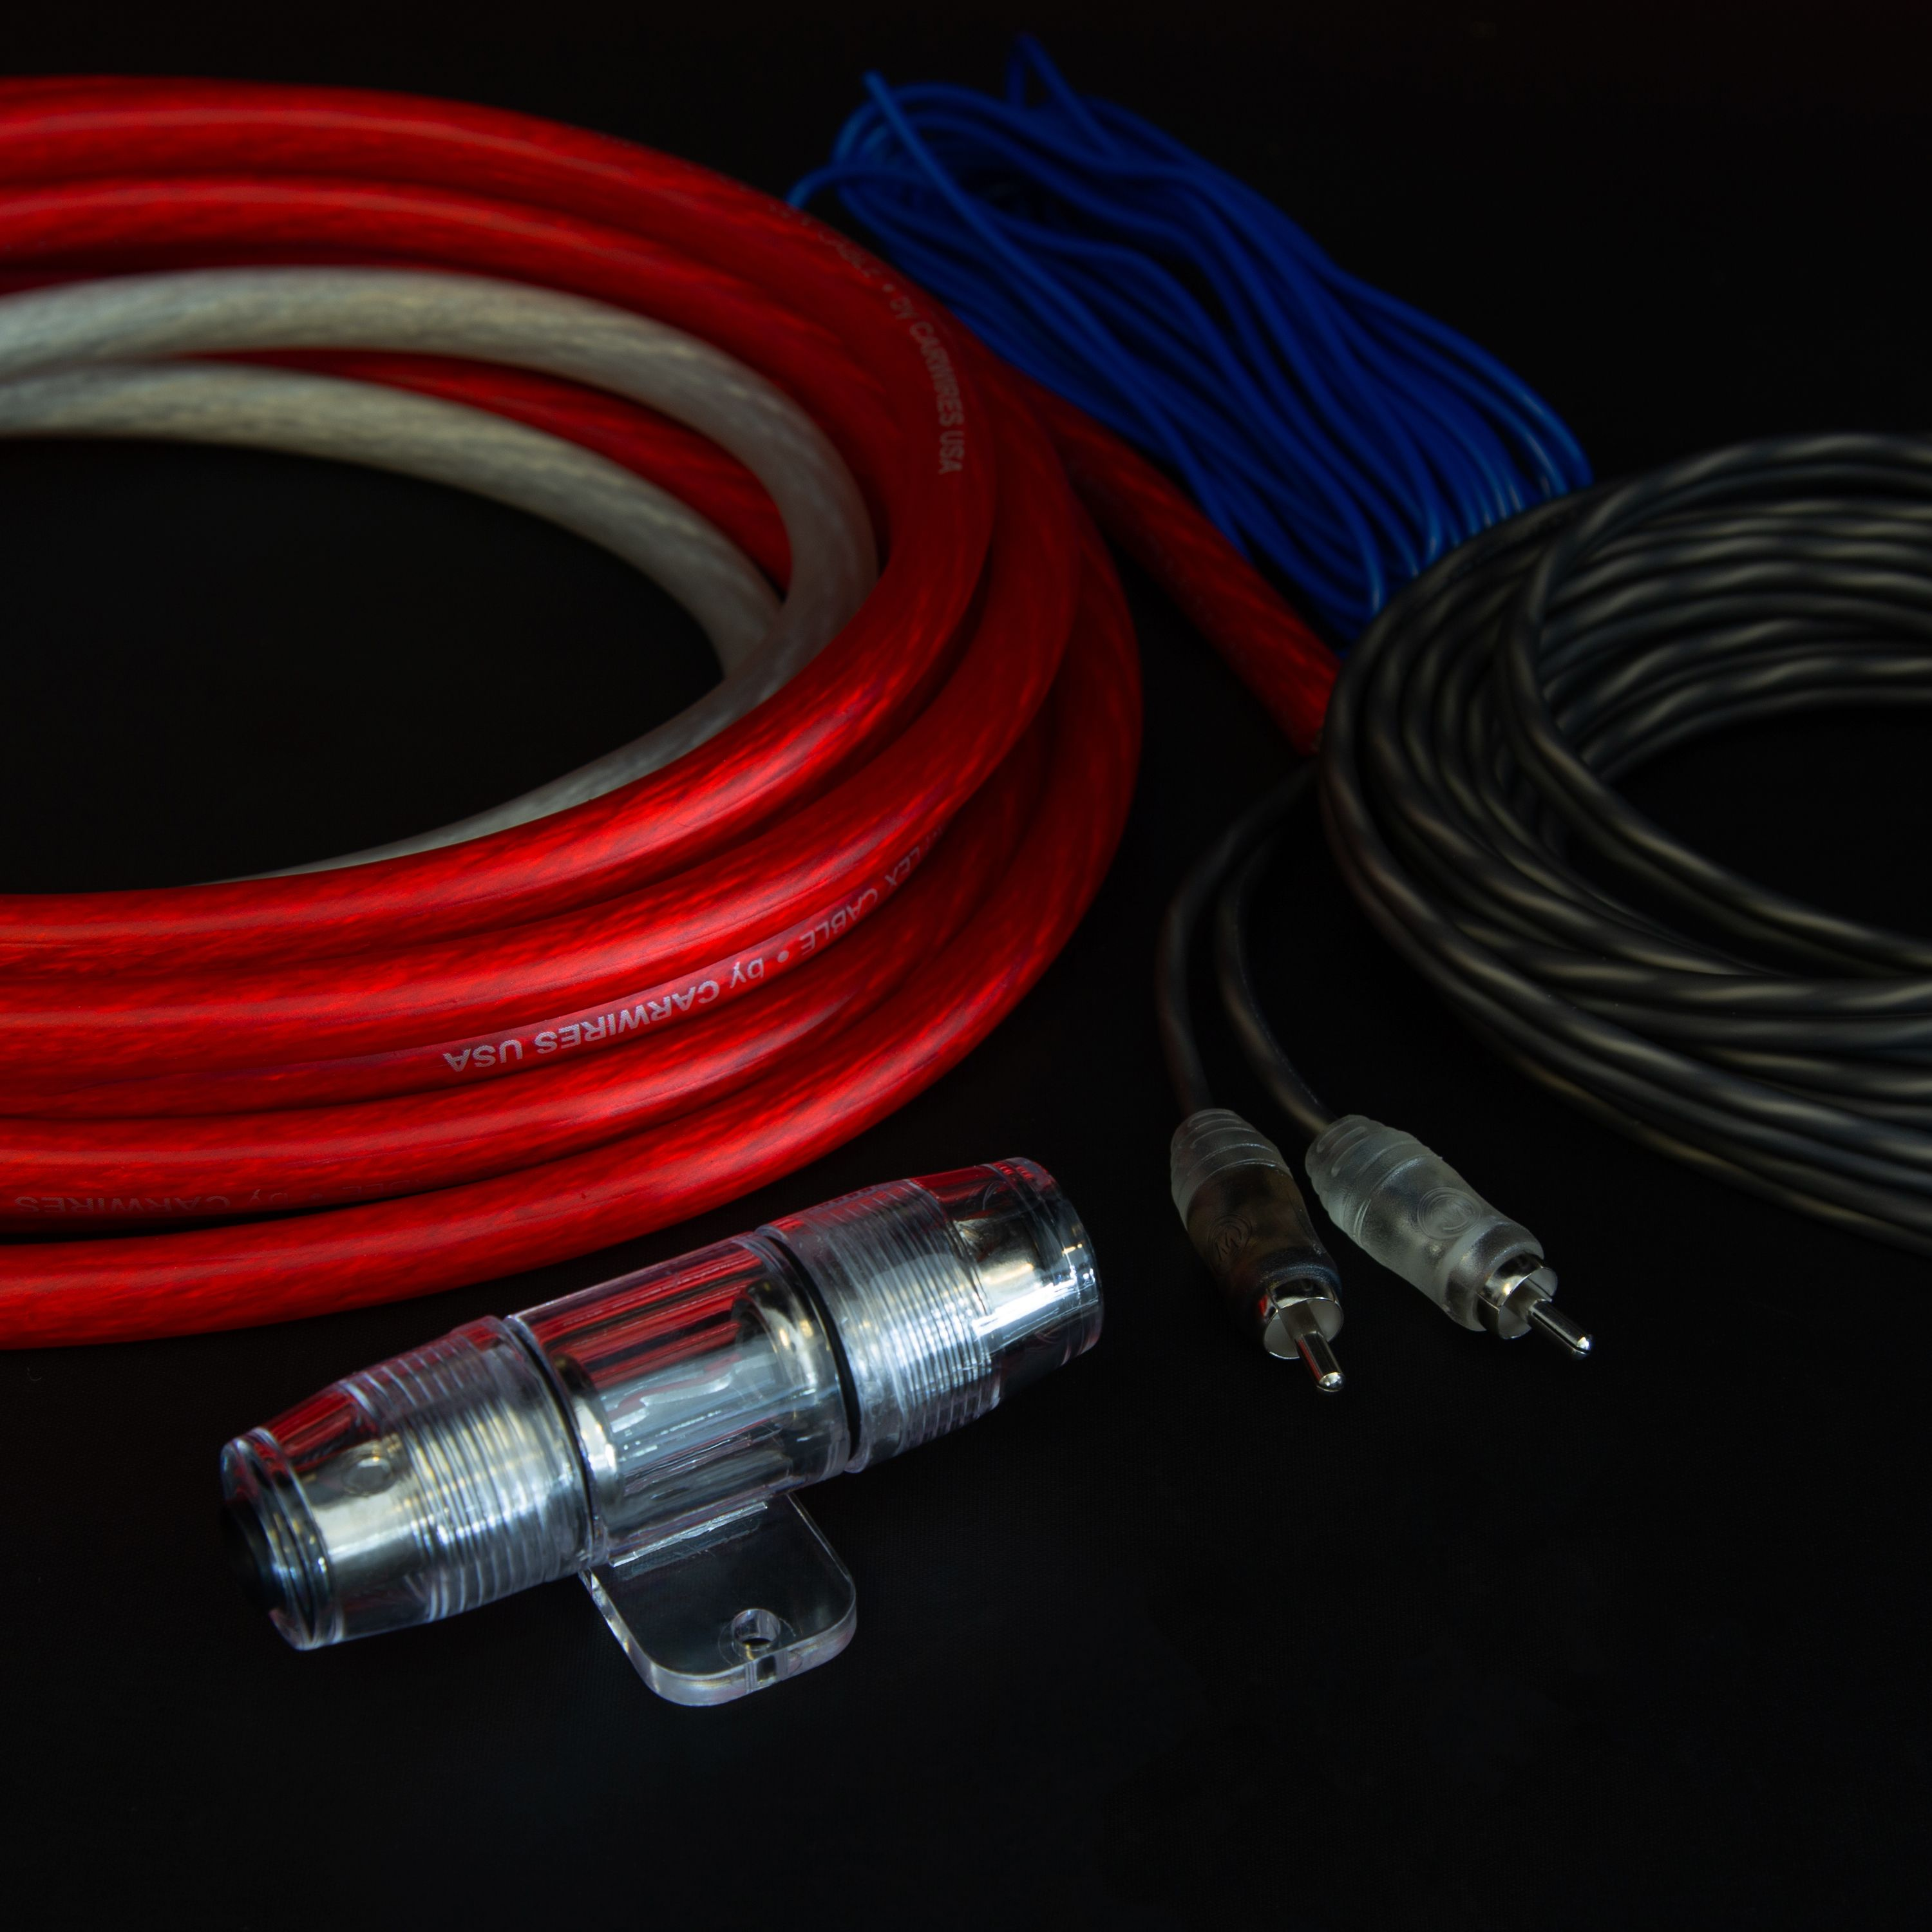 AMP WIRING KIT W//RCA CABLES FAST SHIPPING QPOWER 4GAUGE USA LINK *USA LINK* 4G